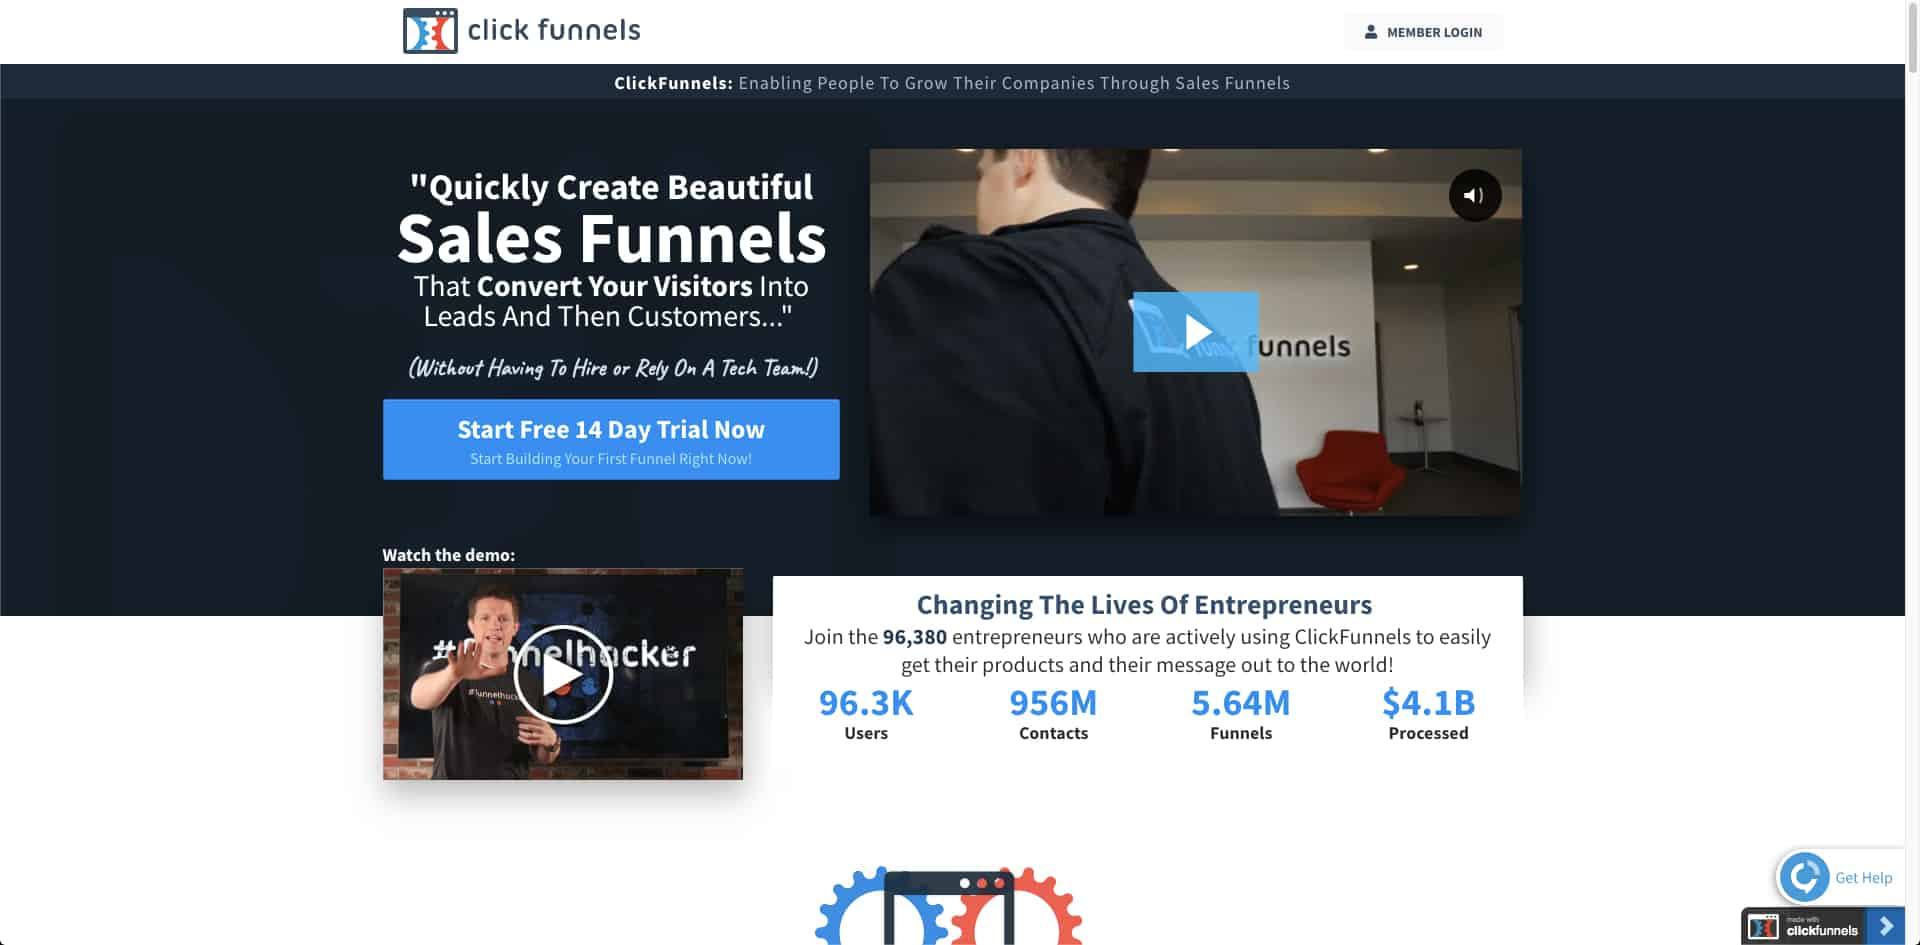 The Who Started Clickfunnels Ideas